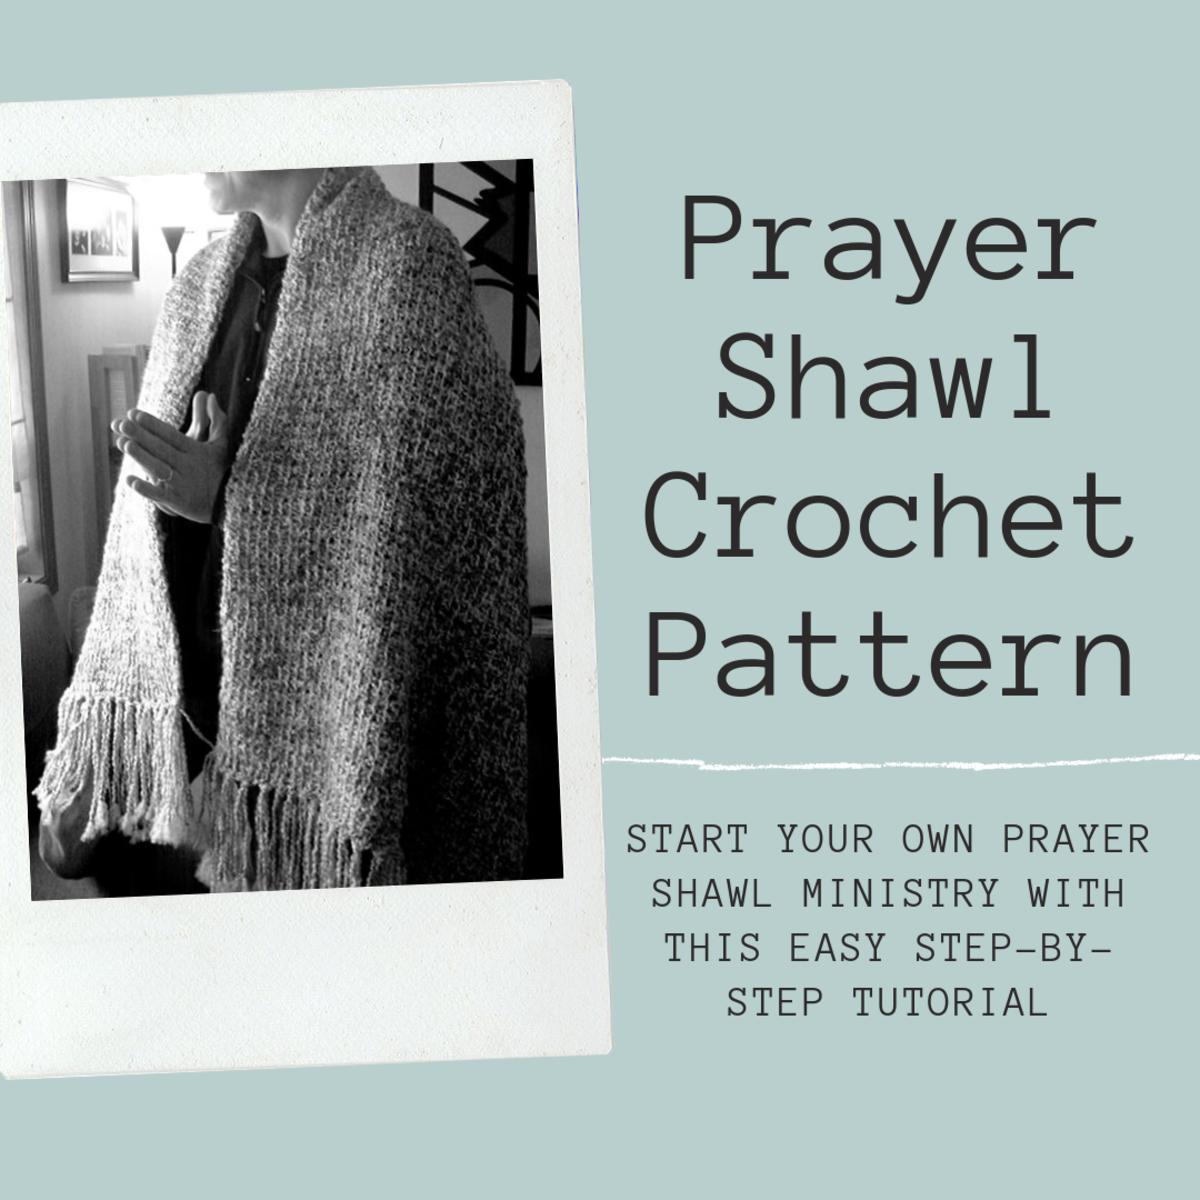 Learn all about prayer shawls, including how to make one yourself.